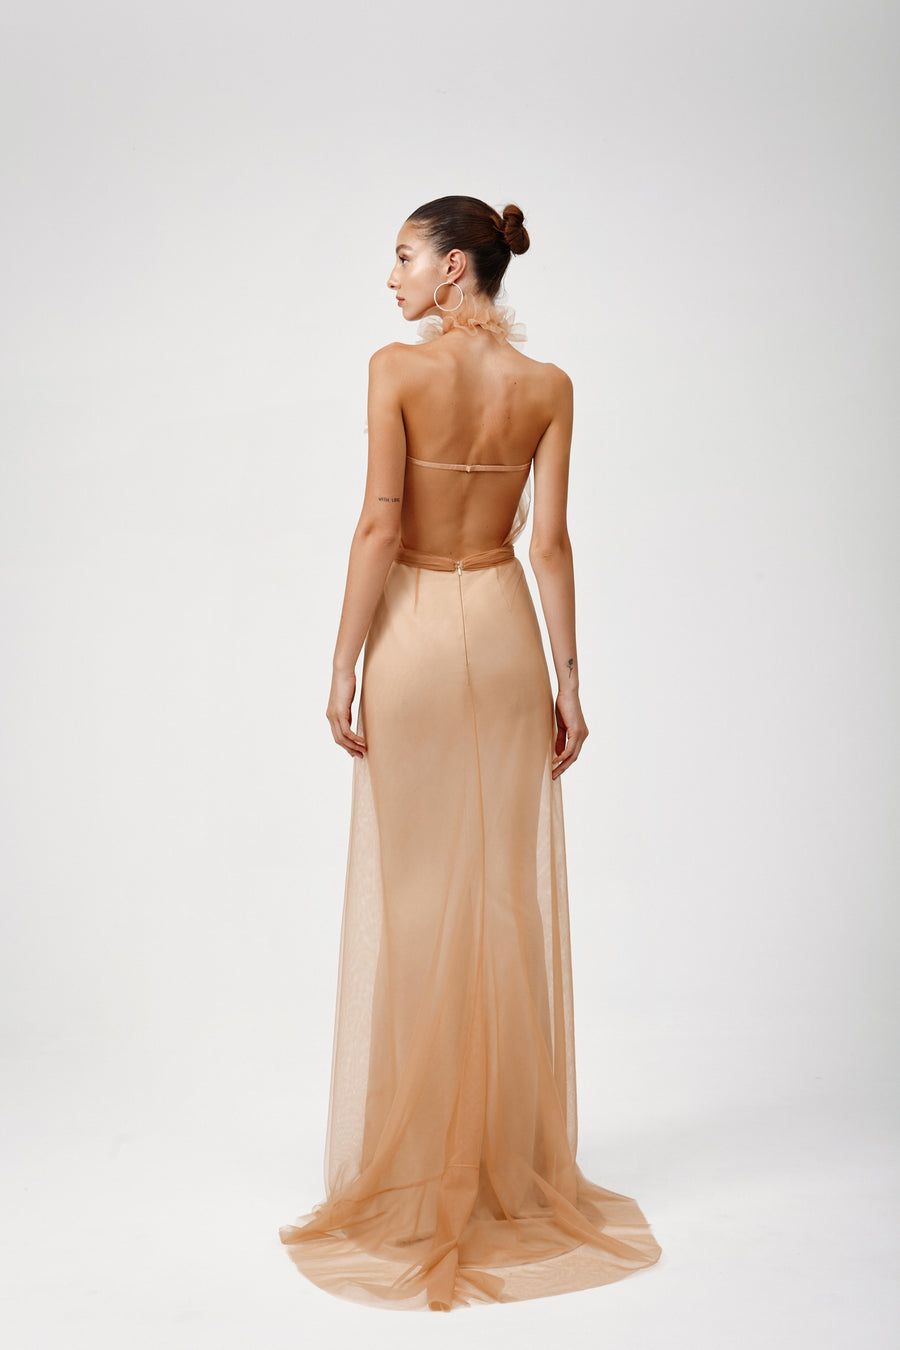 Jasmin Dress - Apricot Cream